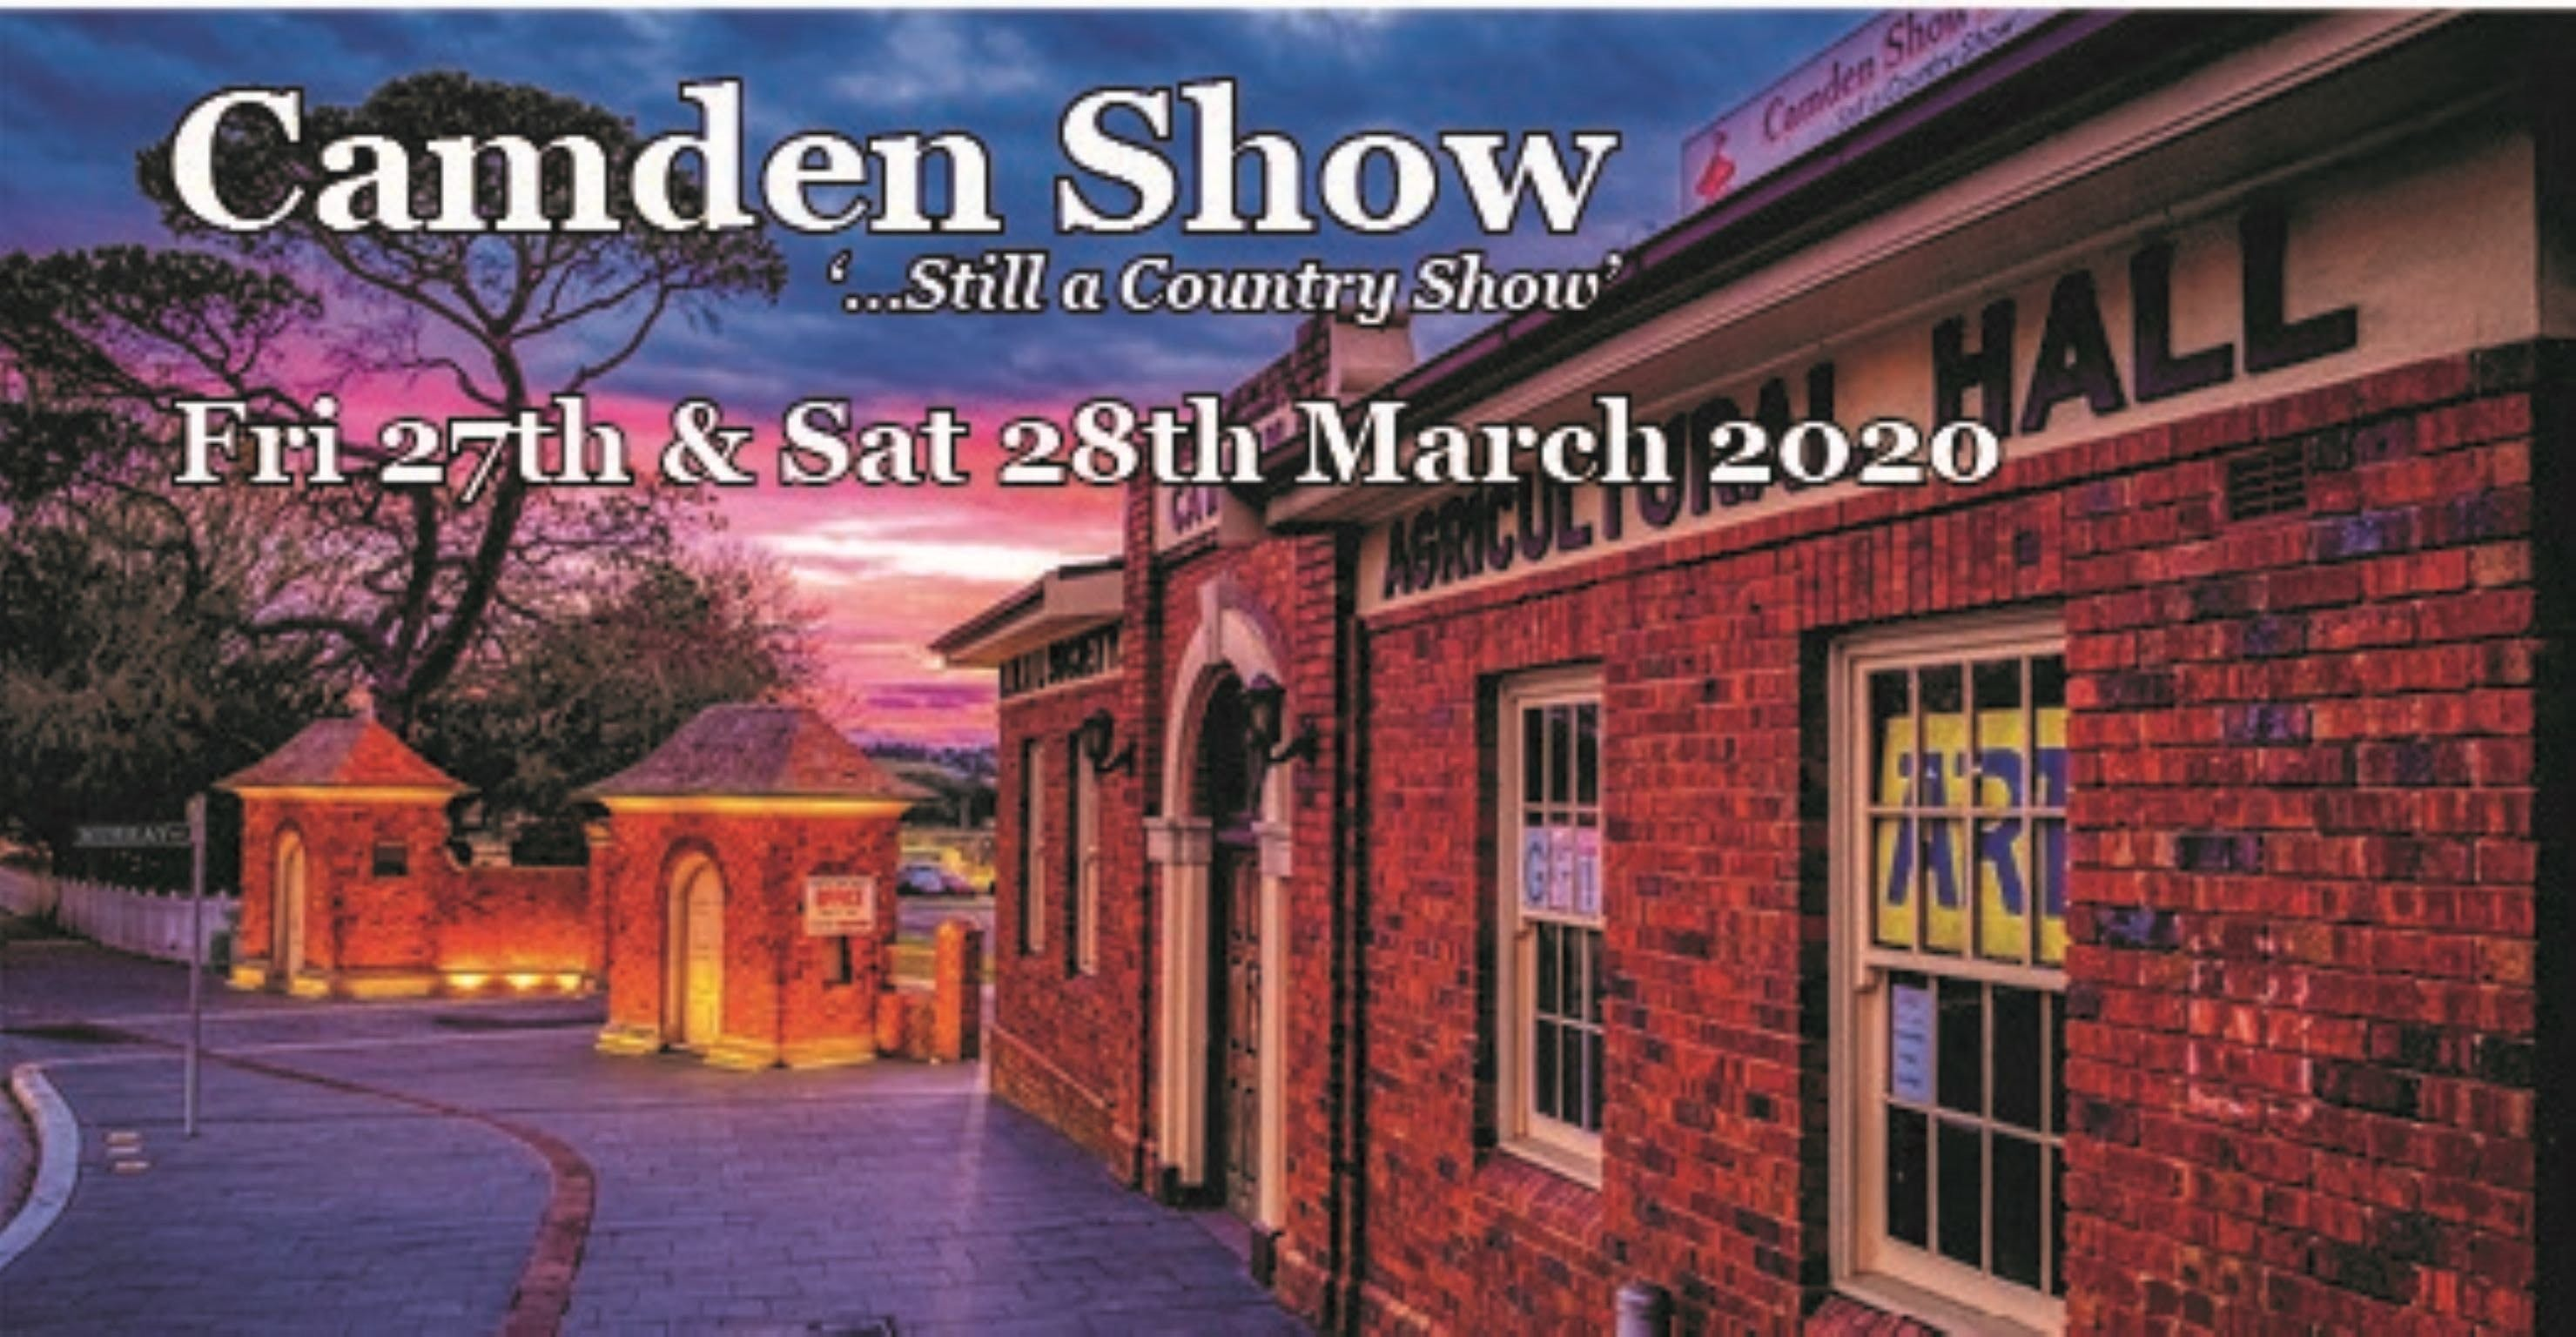 Camden Show - Sunshine Coast Tourism